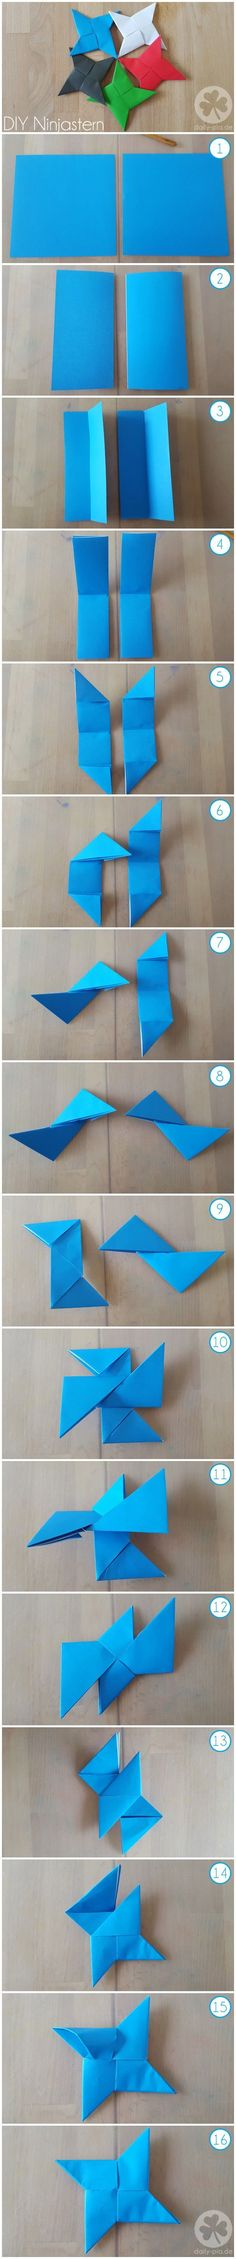 Lego Ninjago Geburtstag DIY instructions ninja star / throwing star made of paper (origami) for a ni Lego Ninjago, Ninjago Party, Lego Lego, Lego Batman, Ninja Turtle Party, Ninja Turtle Birthday, Ninja Turtles, Ninja Birthday Parties, Birthday Fun